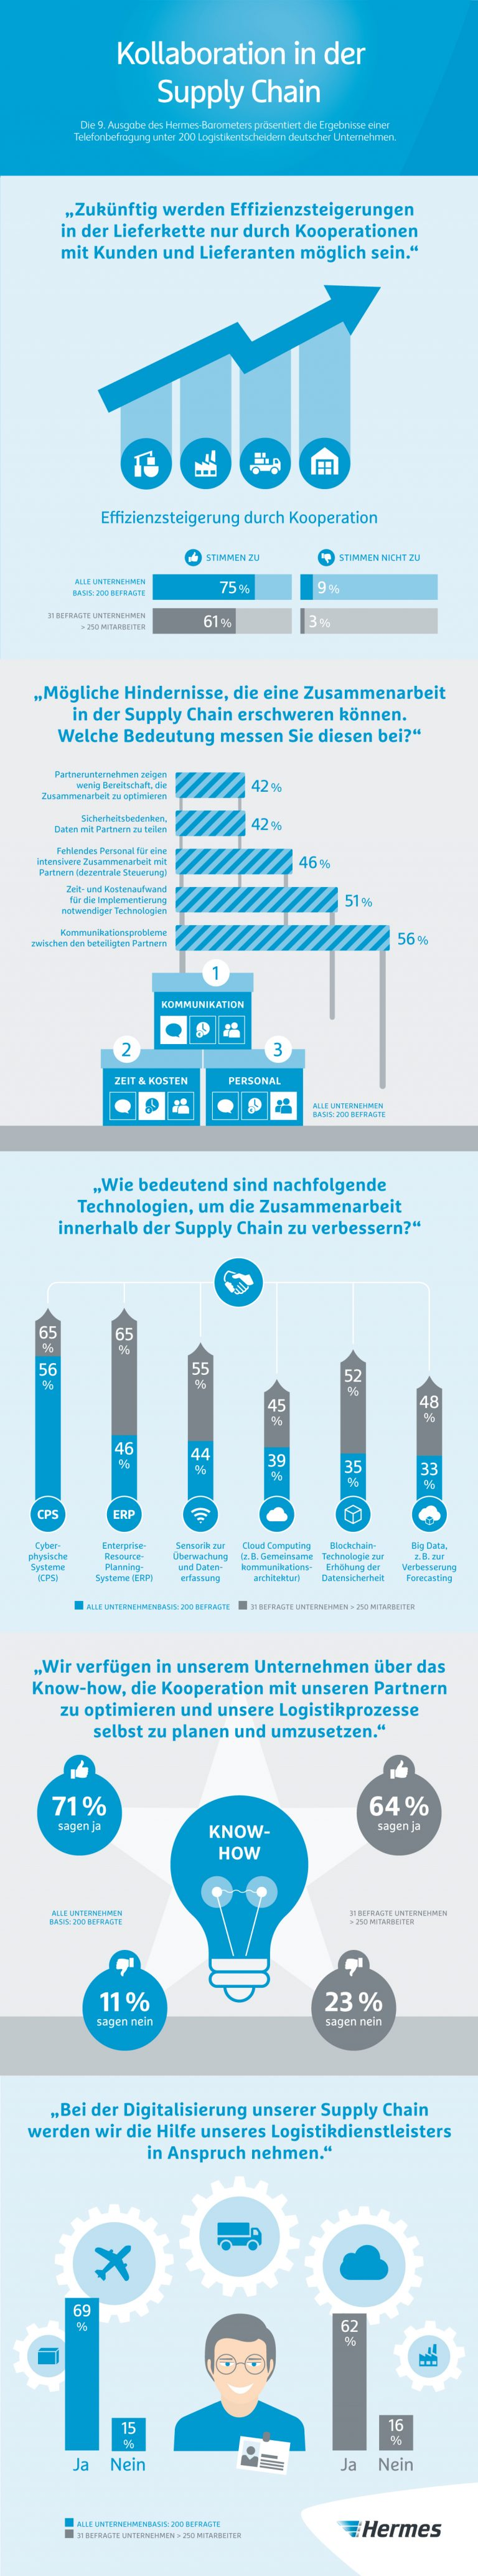 Infografik (JPG): Hermes-Barometer, Kollaboration in der Supply Chain